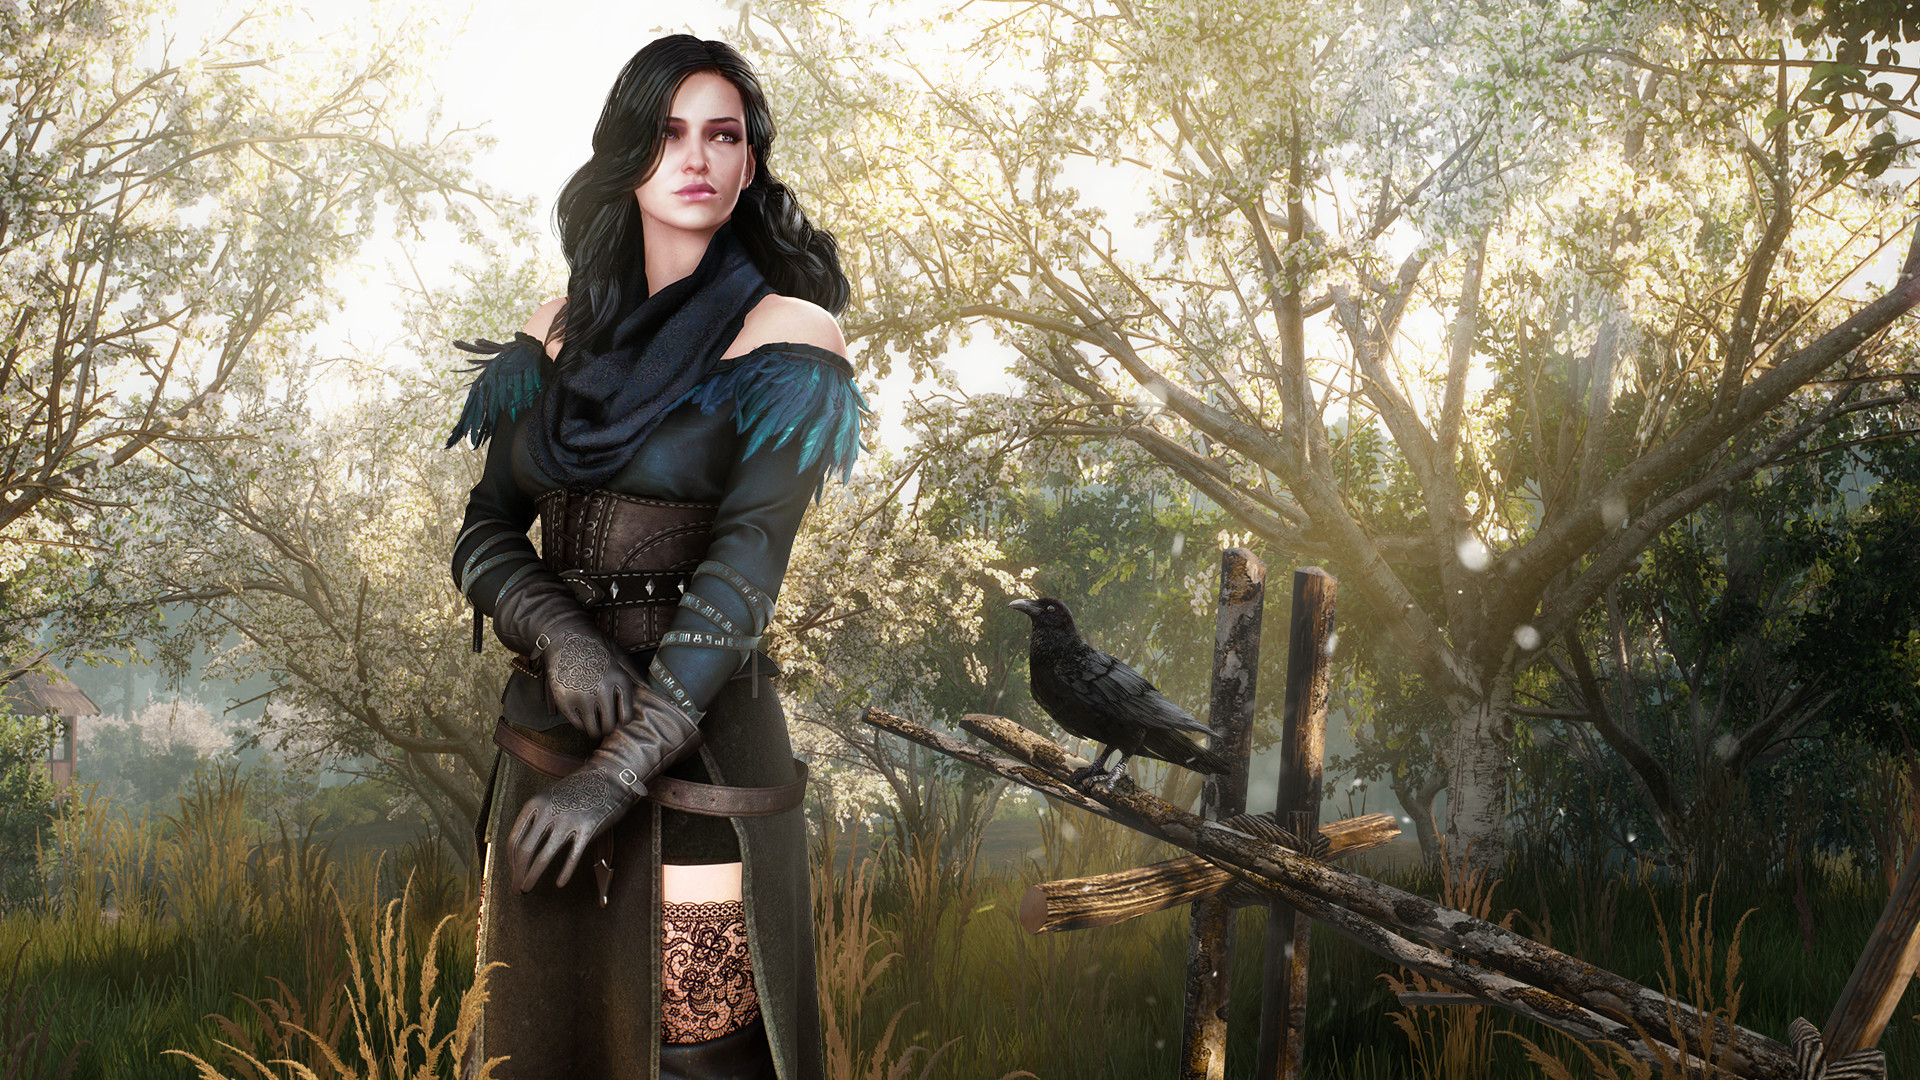 File:Yennefer alternate outfit.jpg